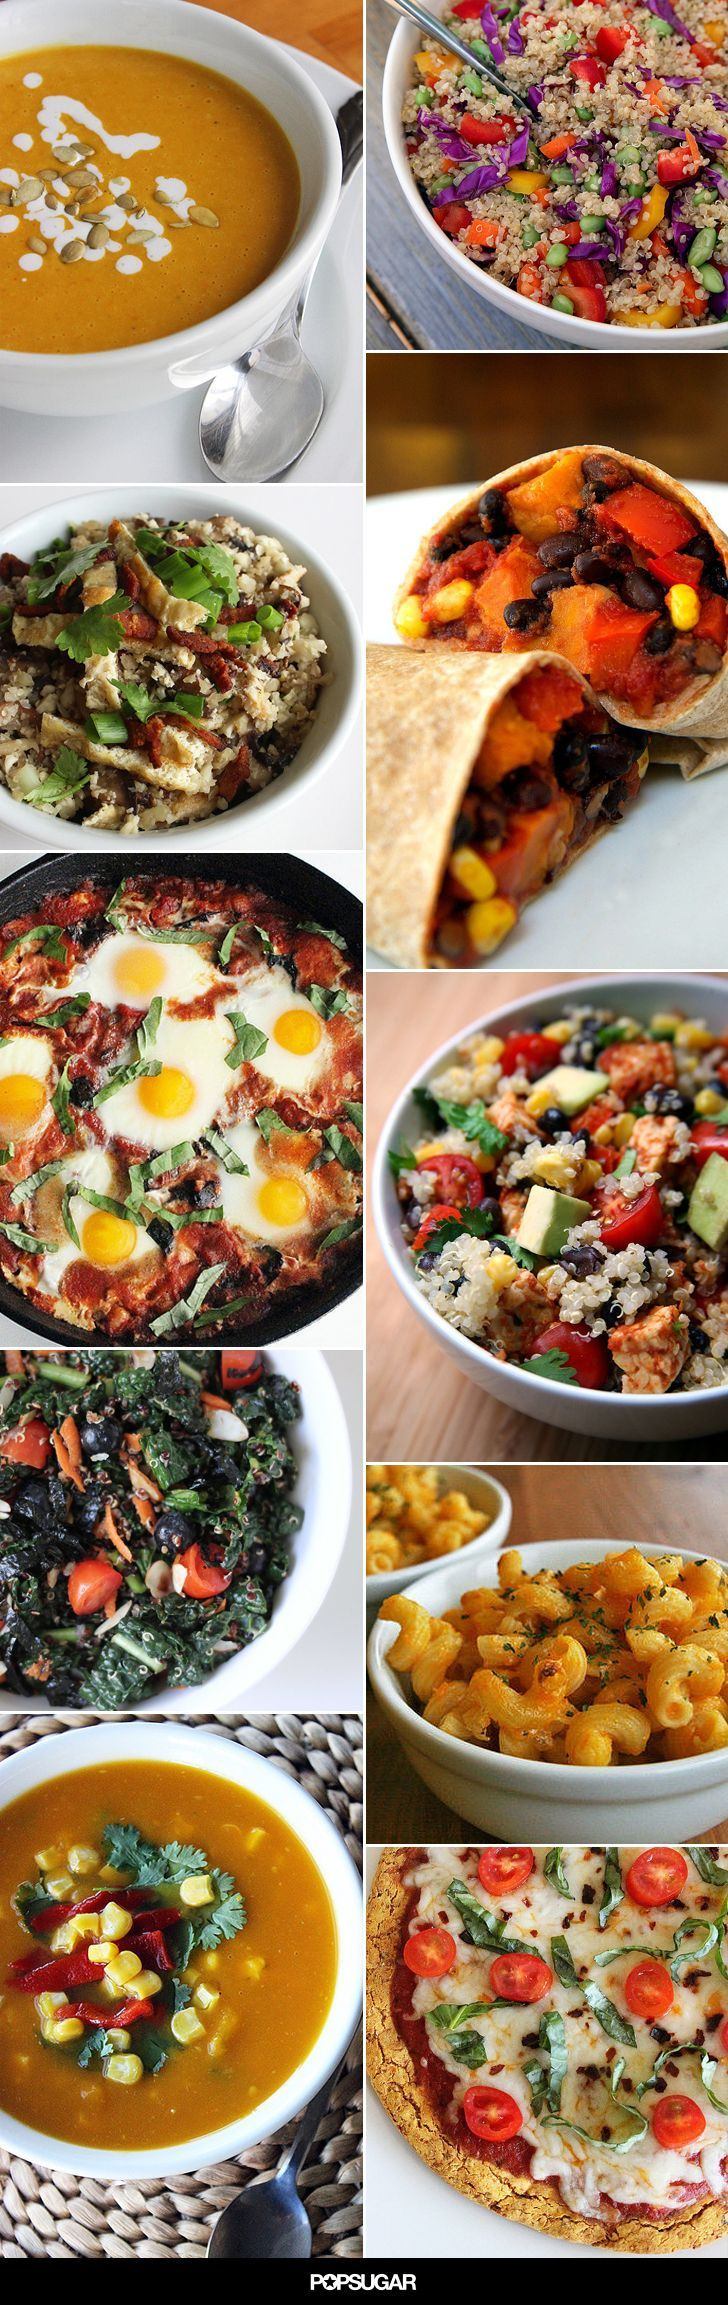 Don't stay stuck in that healthy dinner rut one more night. These 75 recipes will satisfy your dietary preferences and your palate.